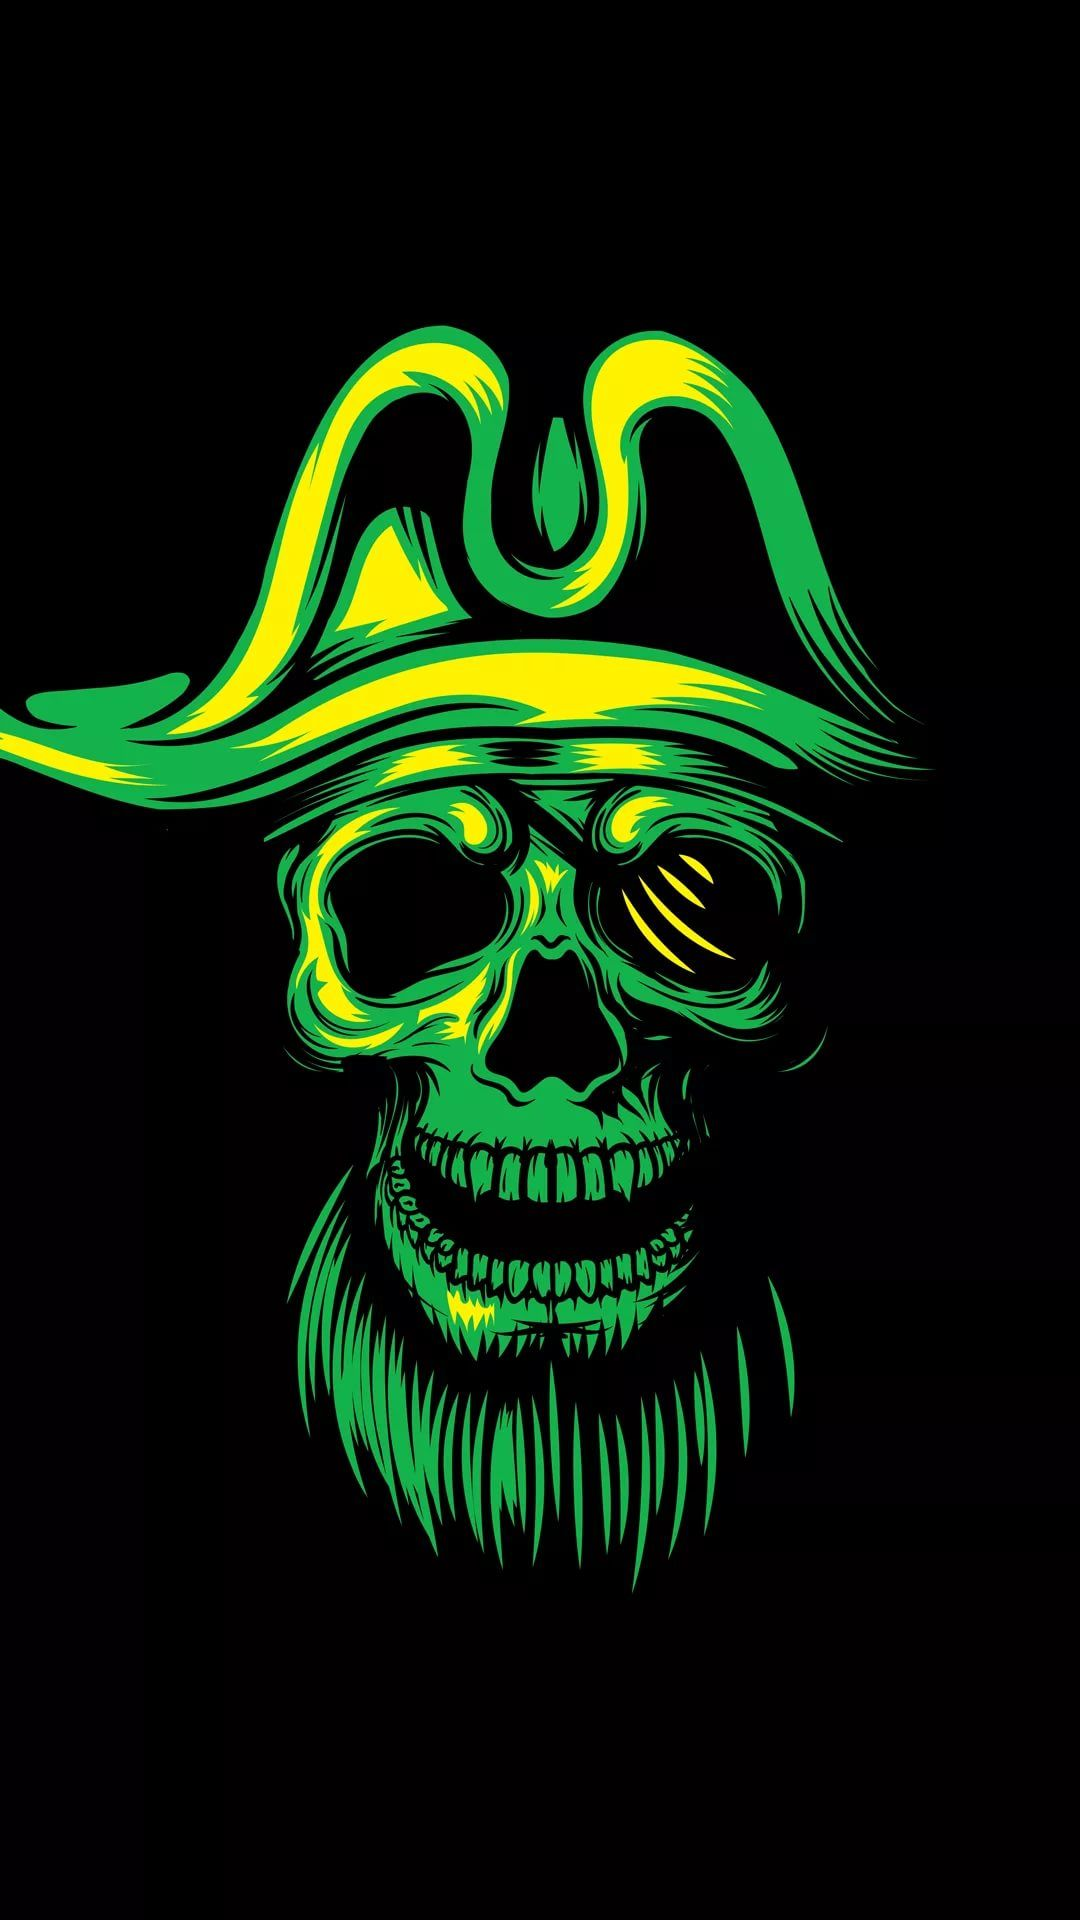 Cool Skull Iphone Wallpapers 20 Images Wallpaperboat